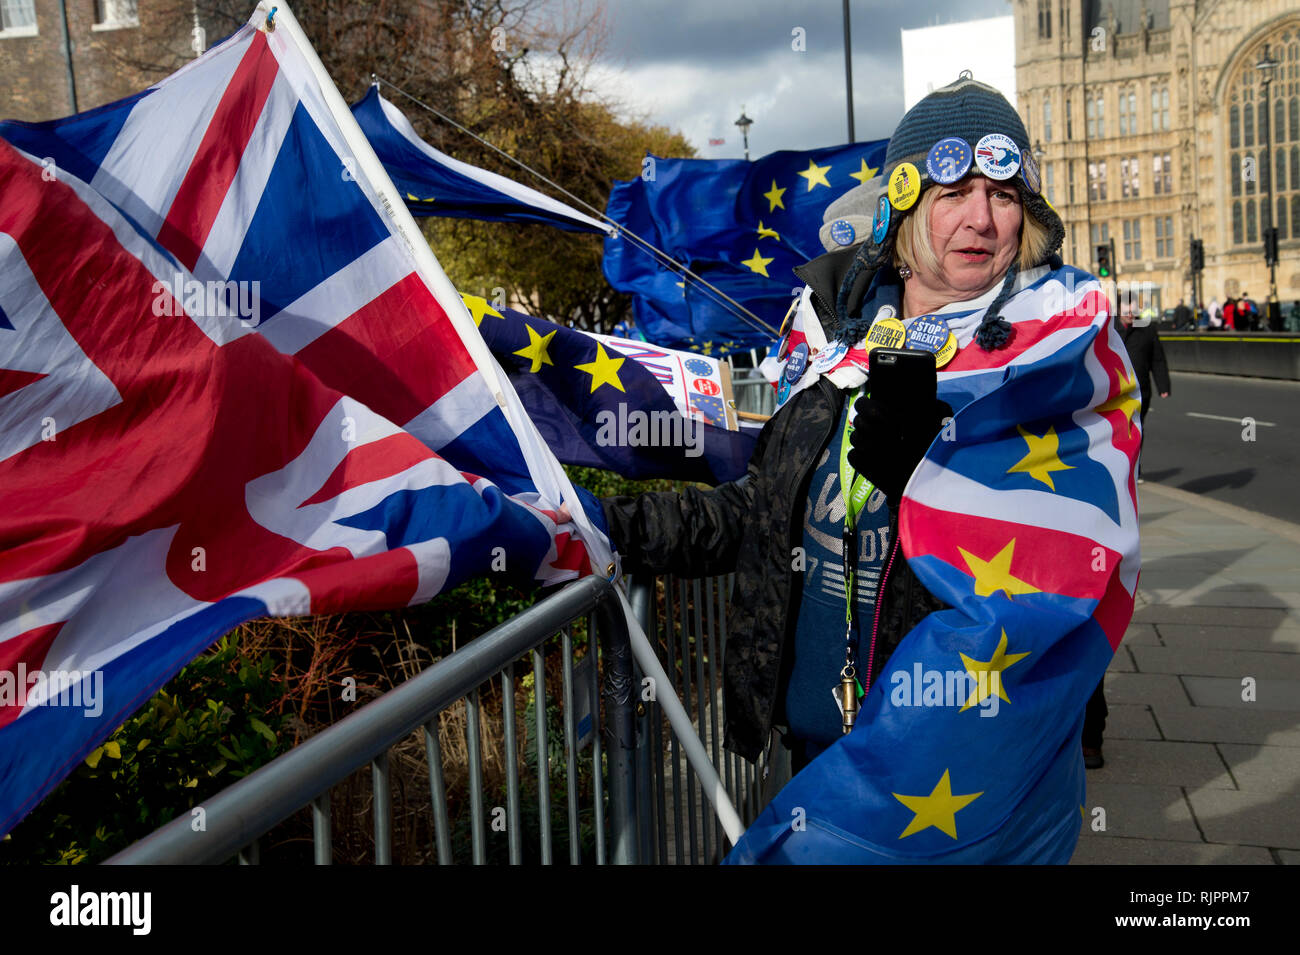 London.Westminster. February 7th 2019. A woman wrapped in a flag, half Union Jack, half European flag protests against leaving the European Union. - Stock Image